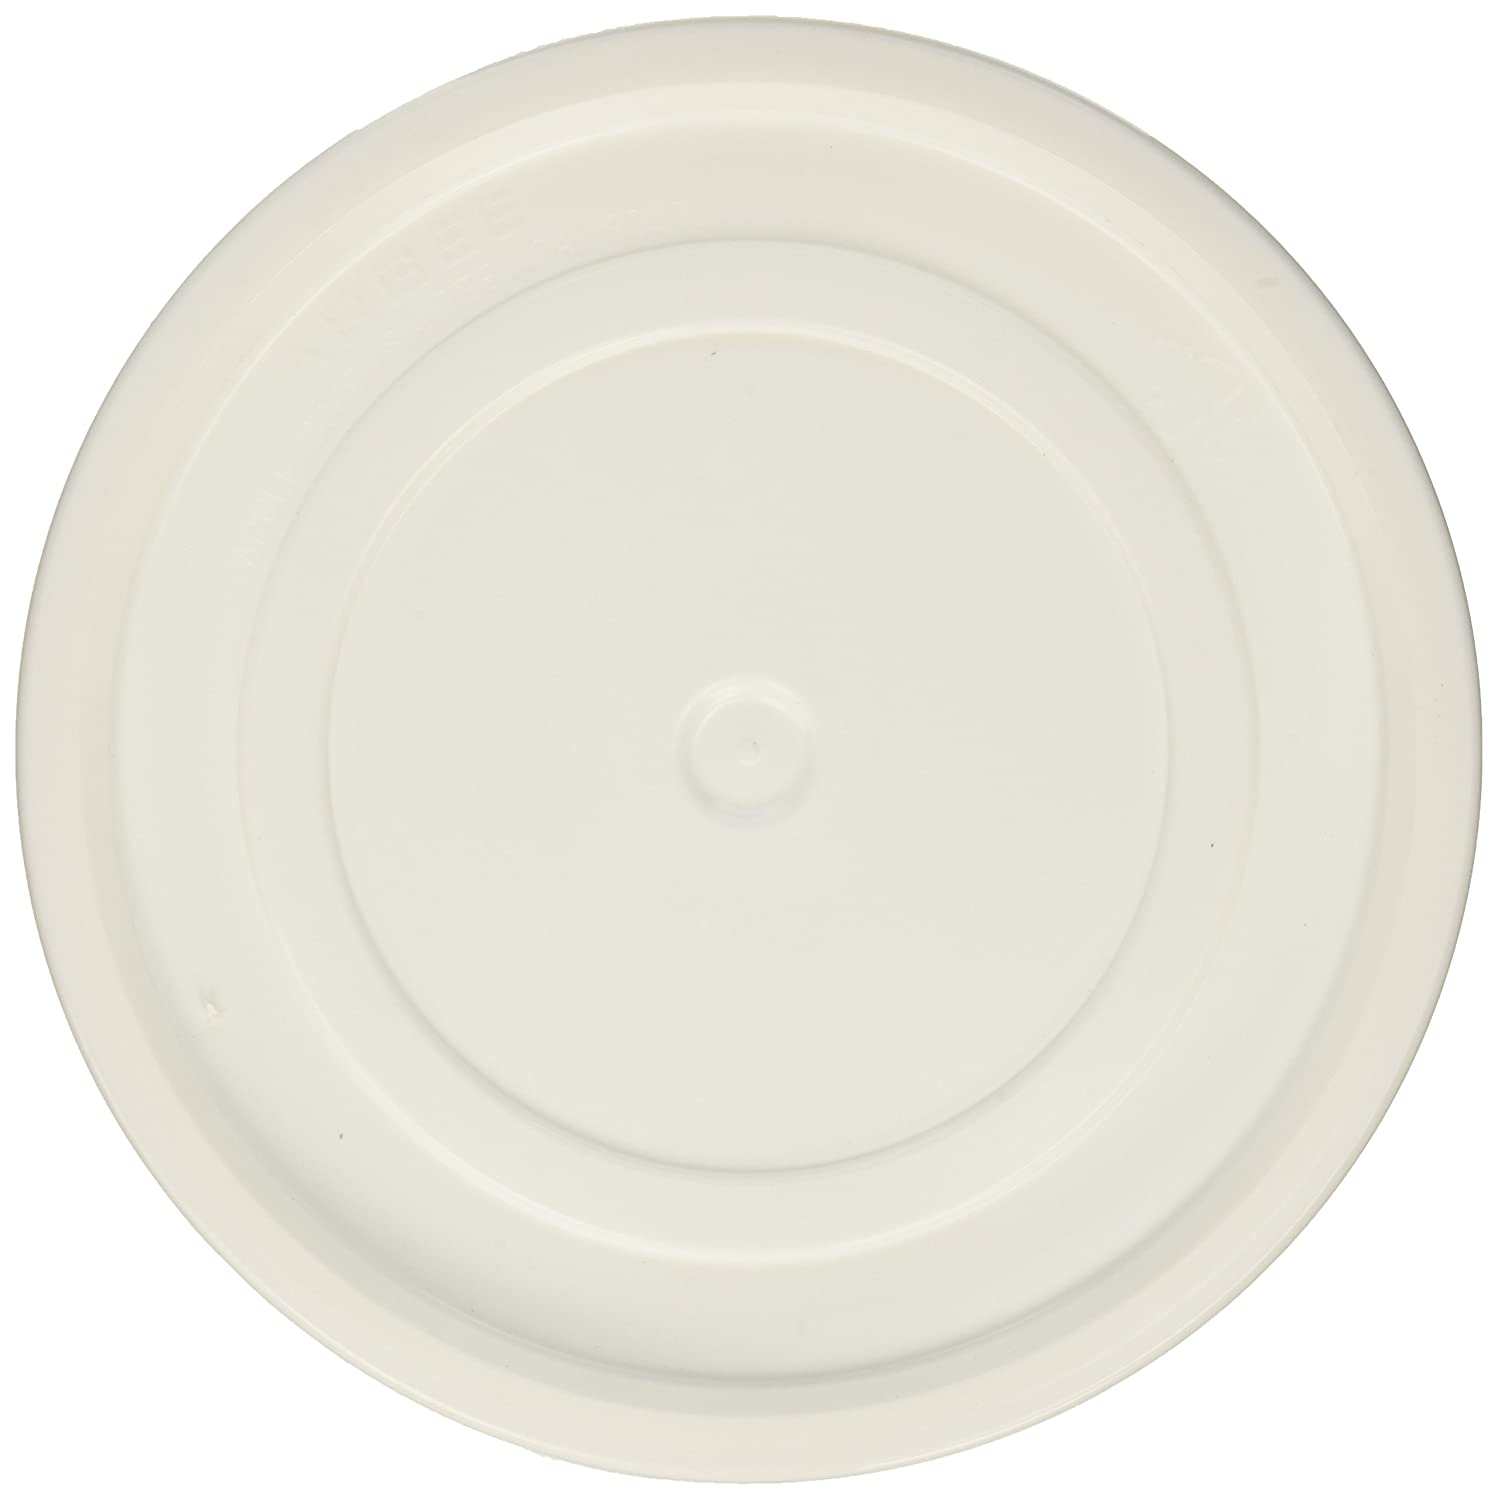 Bon 84 232 Plastic Bucket Lid for 3 1 2 or 5 Gallon Bucket